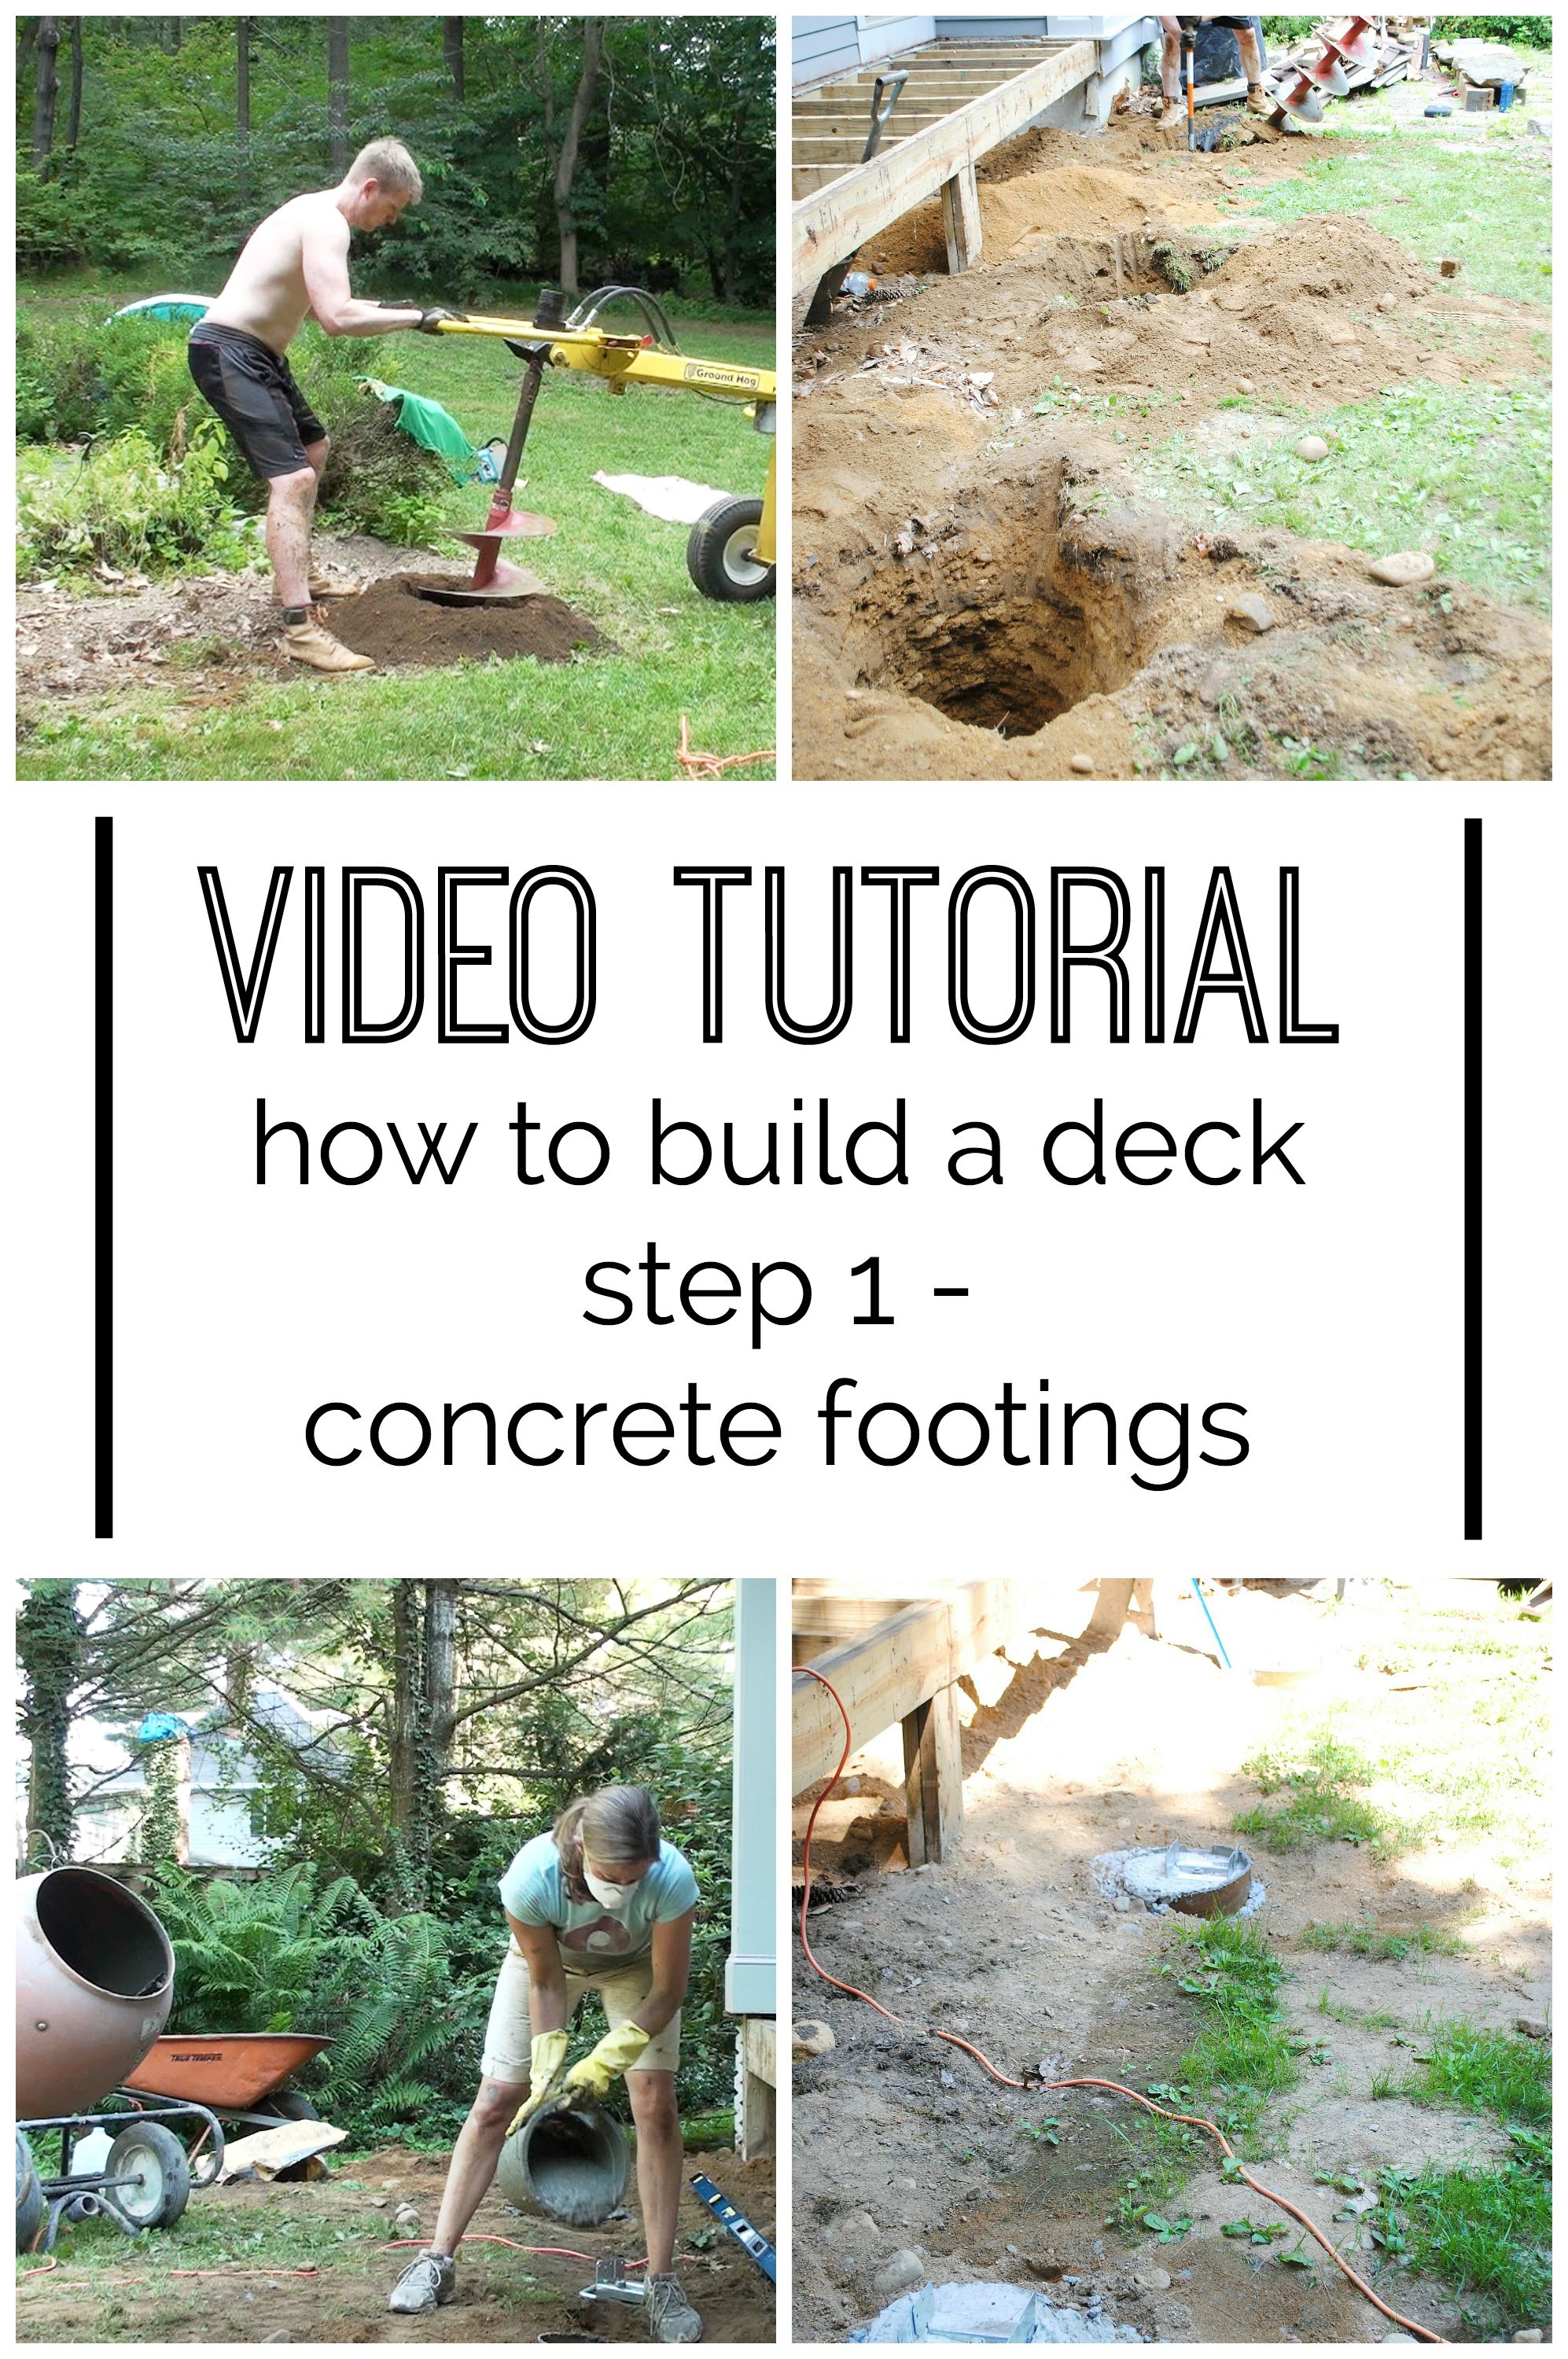 How to build a deck video Steps How To Build Deck This Post Has Both Video And Text Tutorials For The Pinterest Video How To Build Diy Deck Concrete Footings Great Ideas